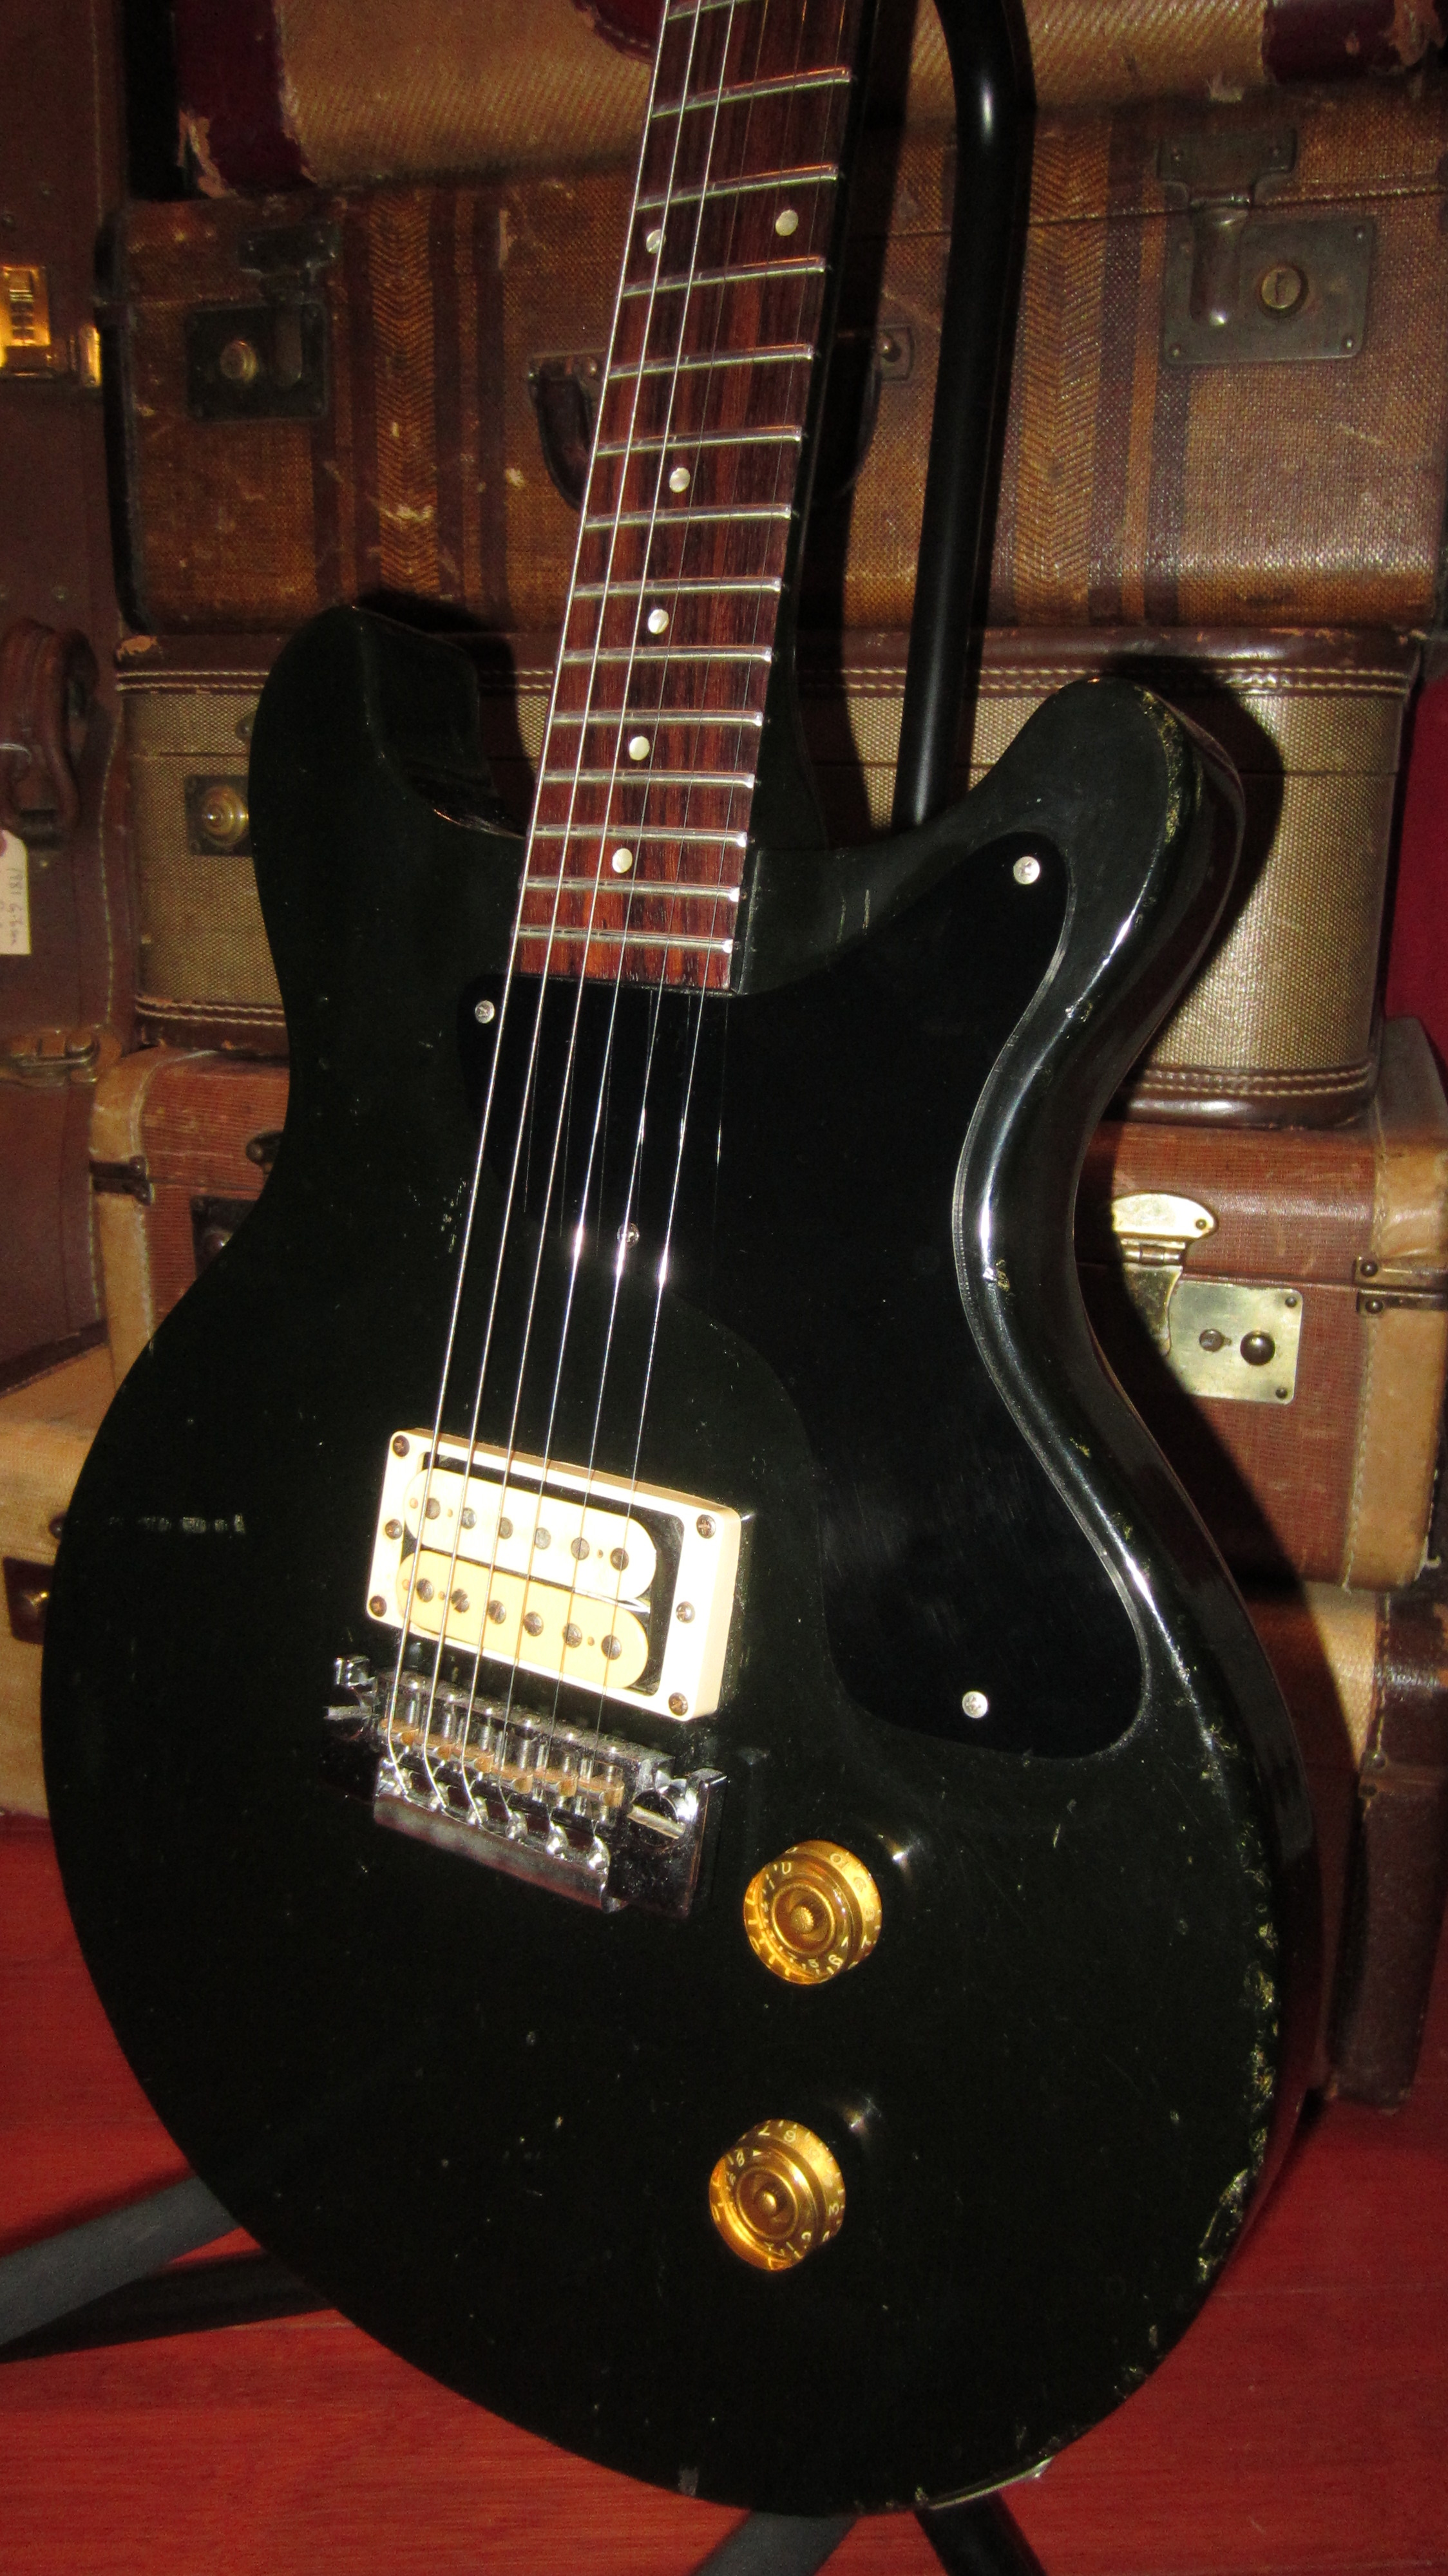 Visa Credit Card Login >> 1981 Gibson Spirit Black > Guitars Electric Solid Body ...